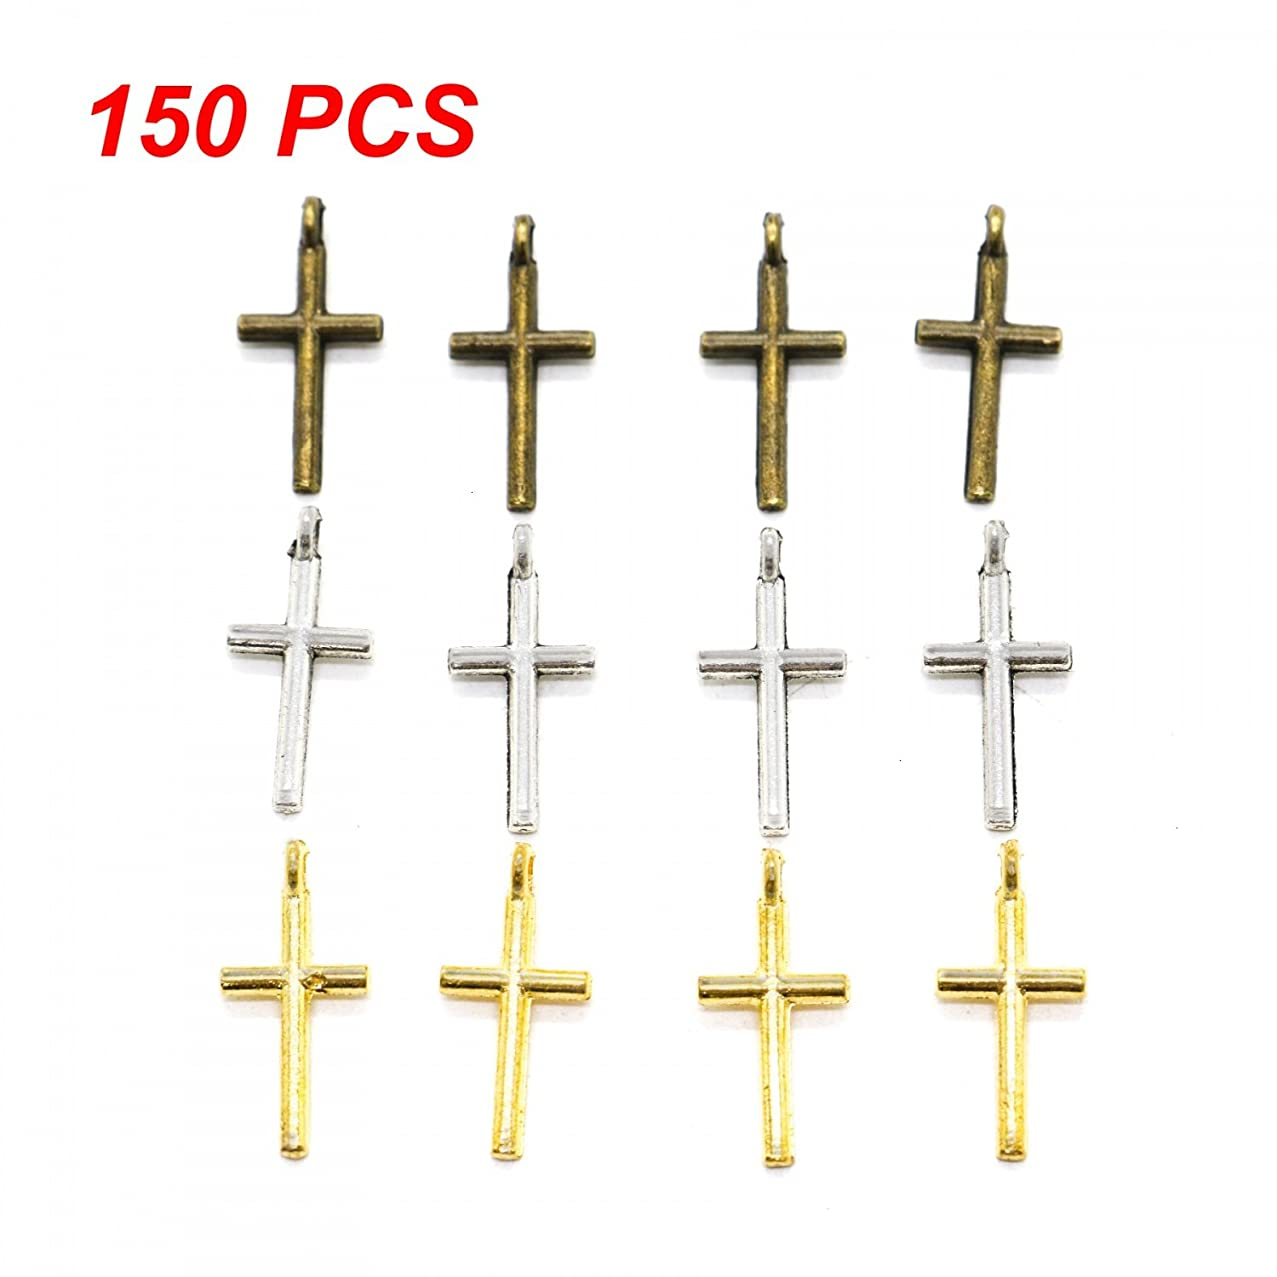 IDS IDA 150pcs Small Cross Beads DIY Charms Pendants